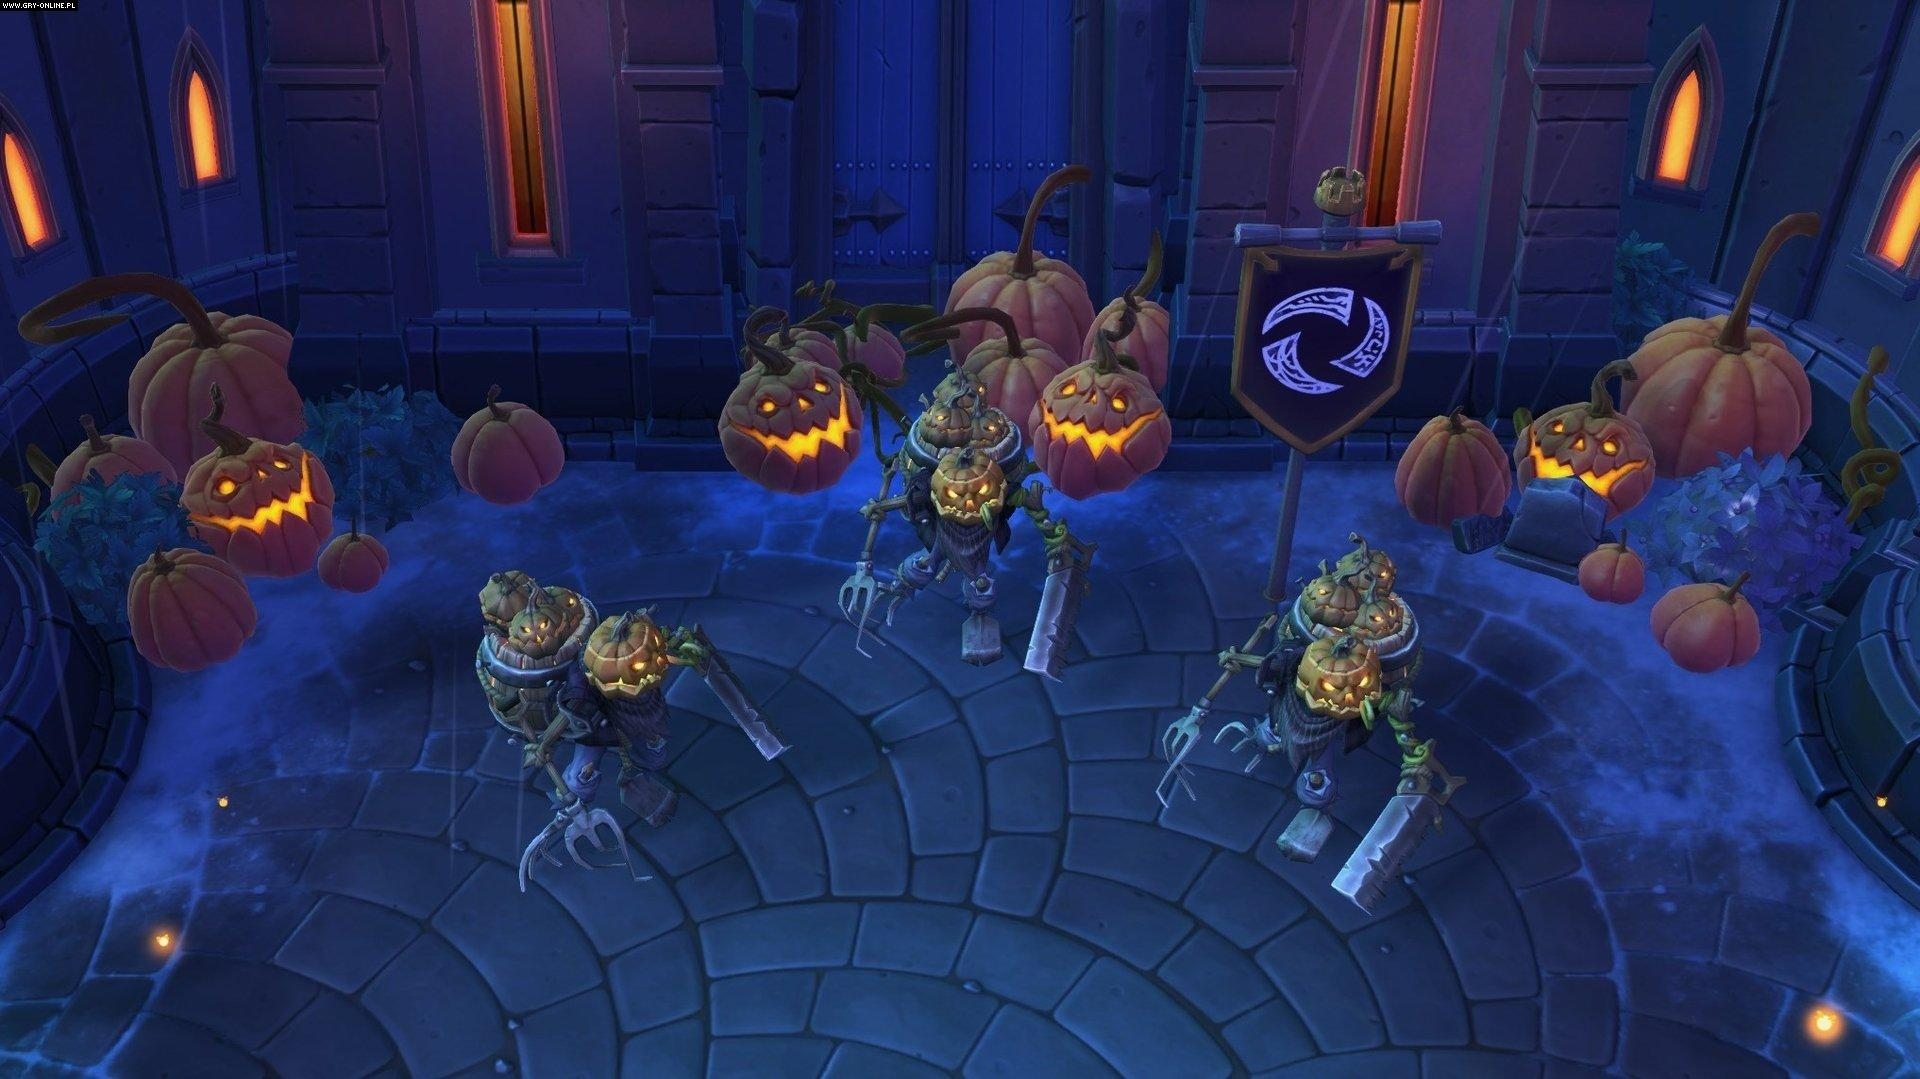 Heroes of the Storm image #2